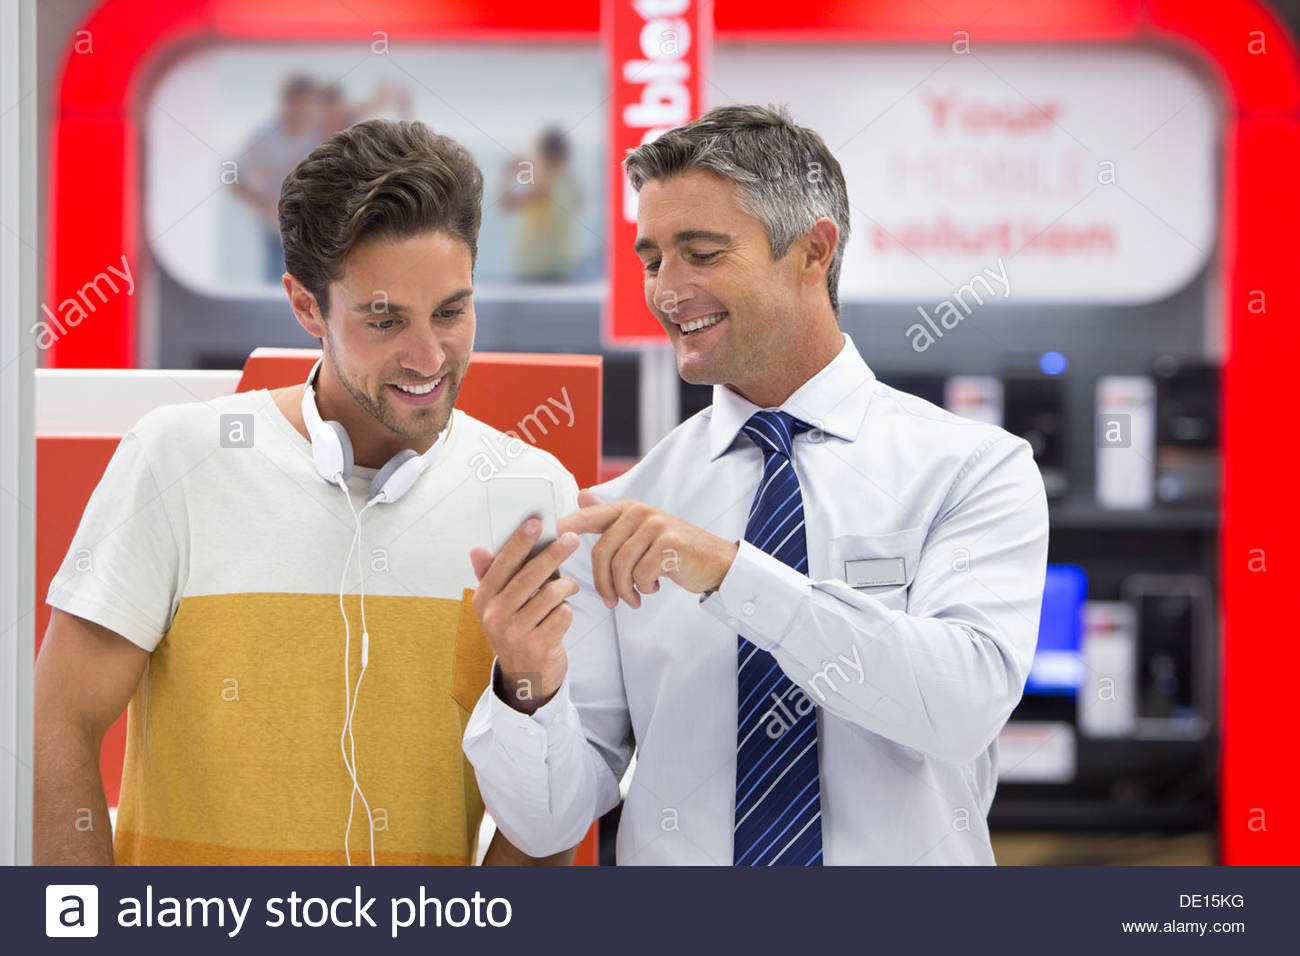 Smiling salesman showing man cell phone in electronics store - Stock Image